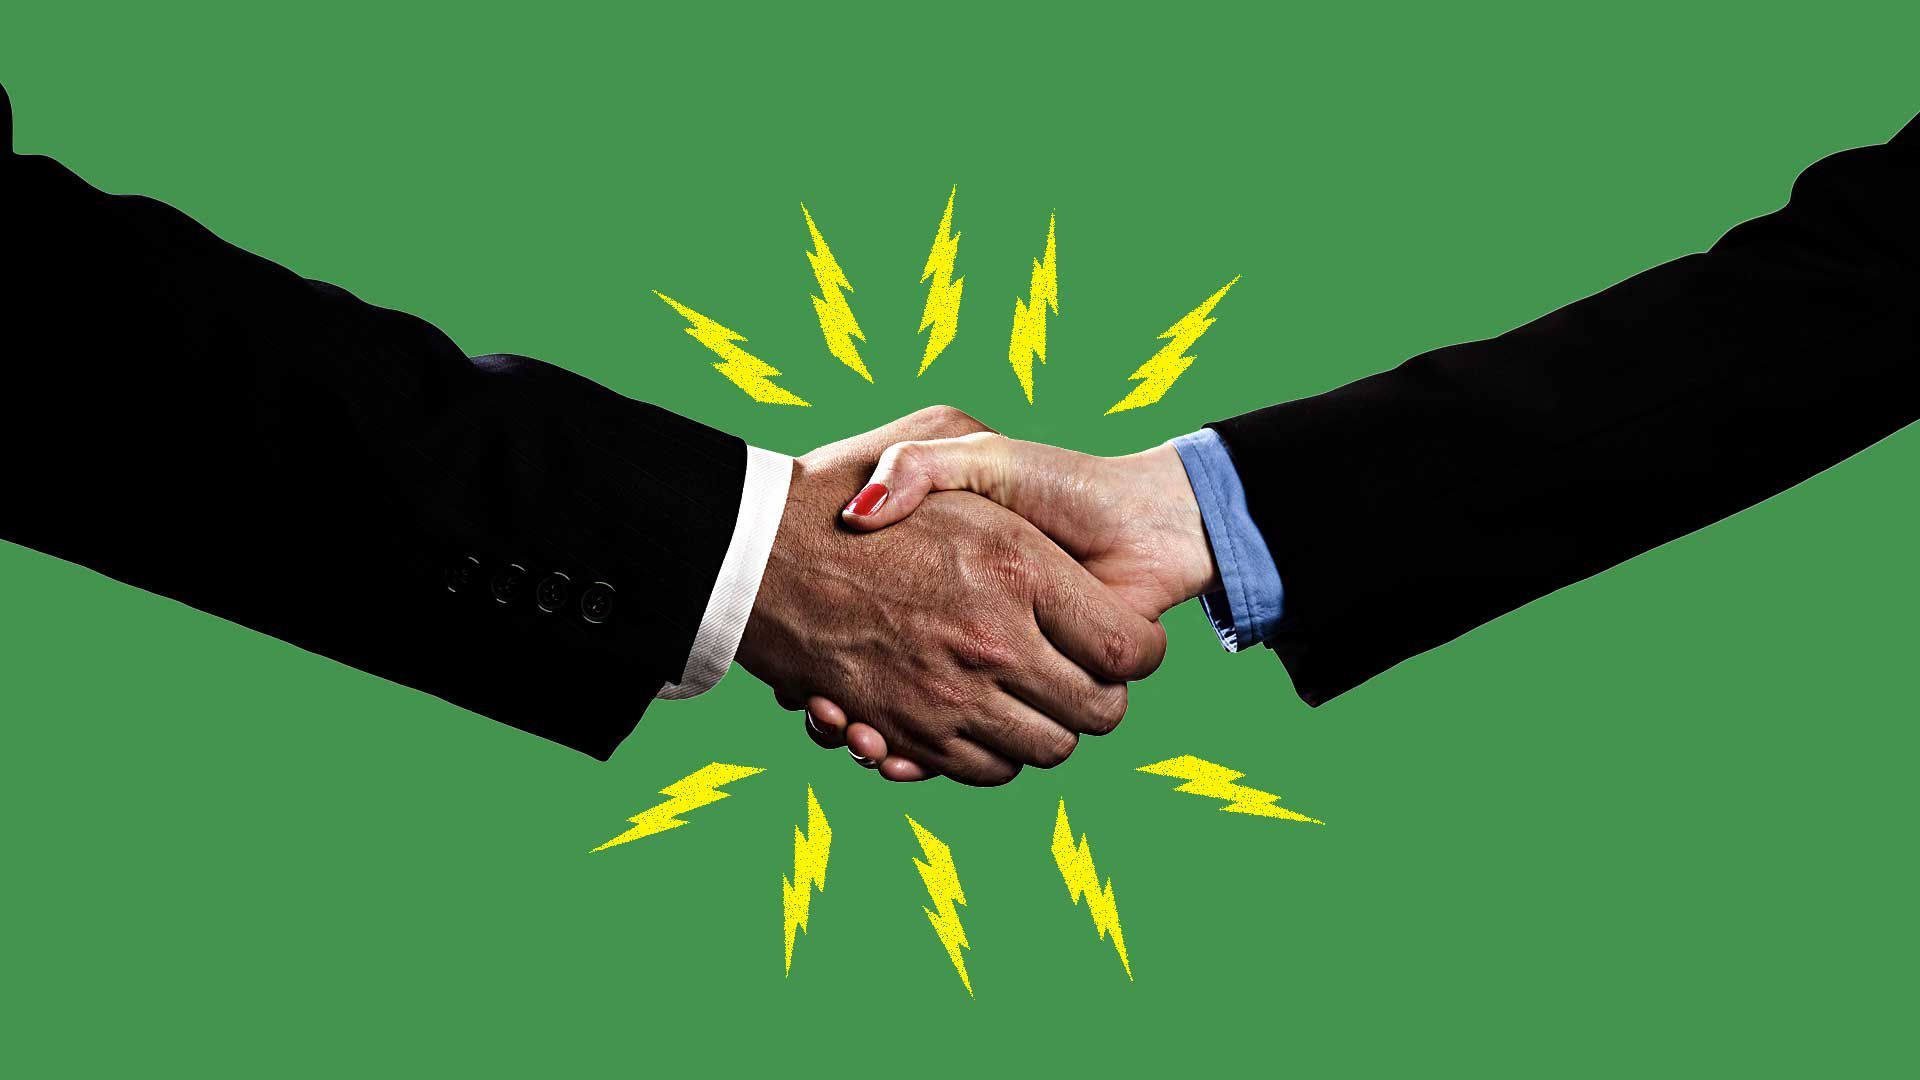 A handshake emitting electrical sparks